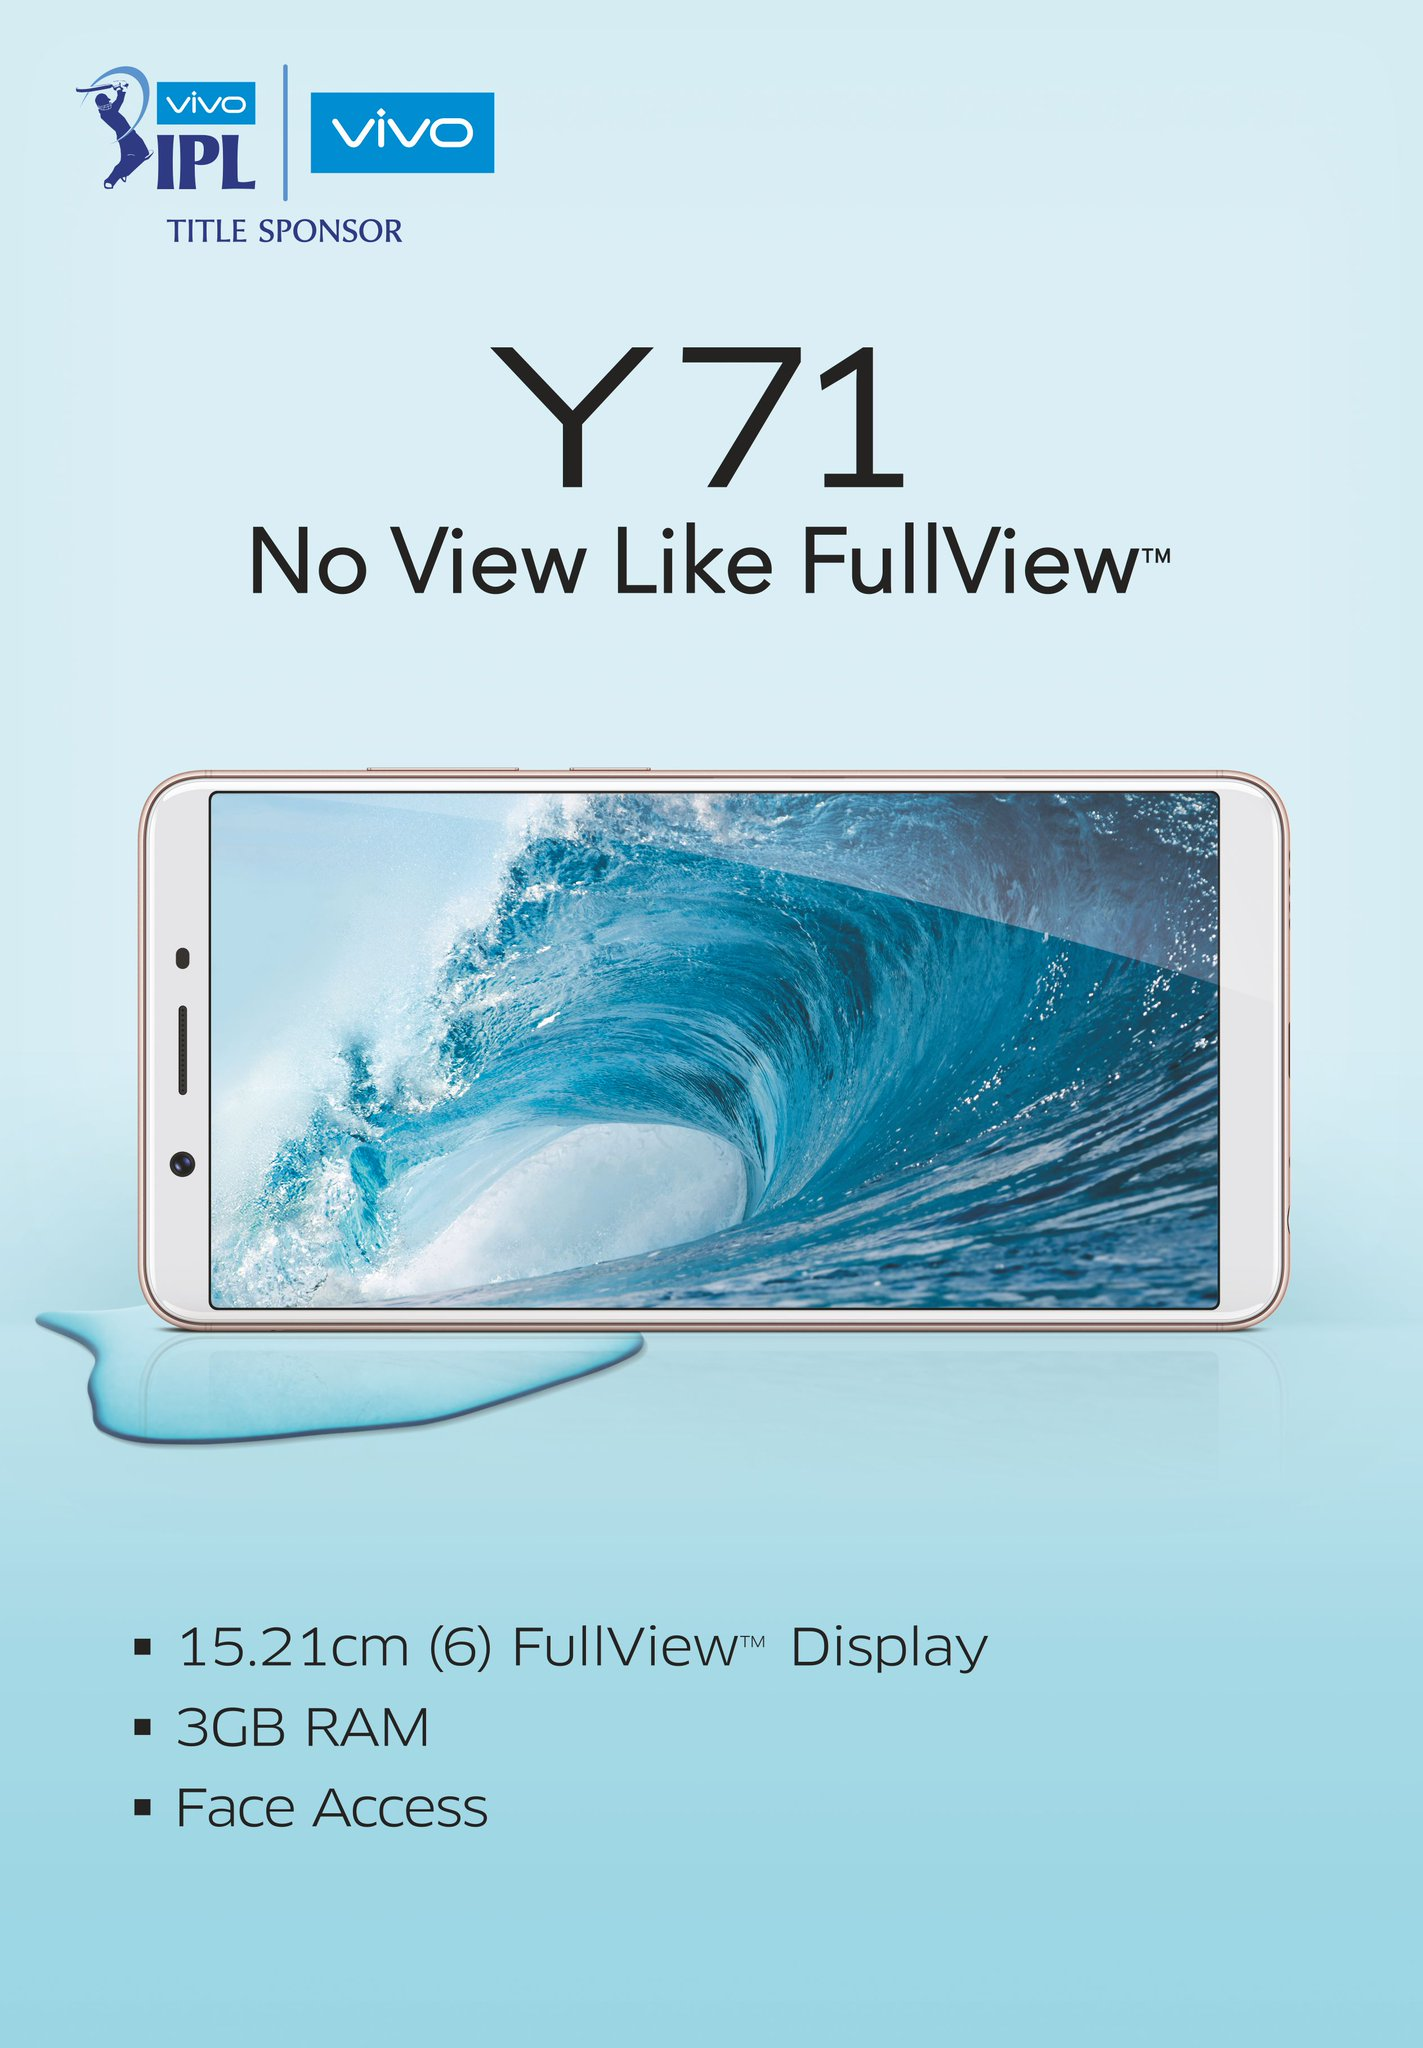 Vivo Y71 Smartphone Launched in India